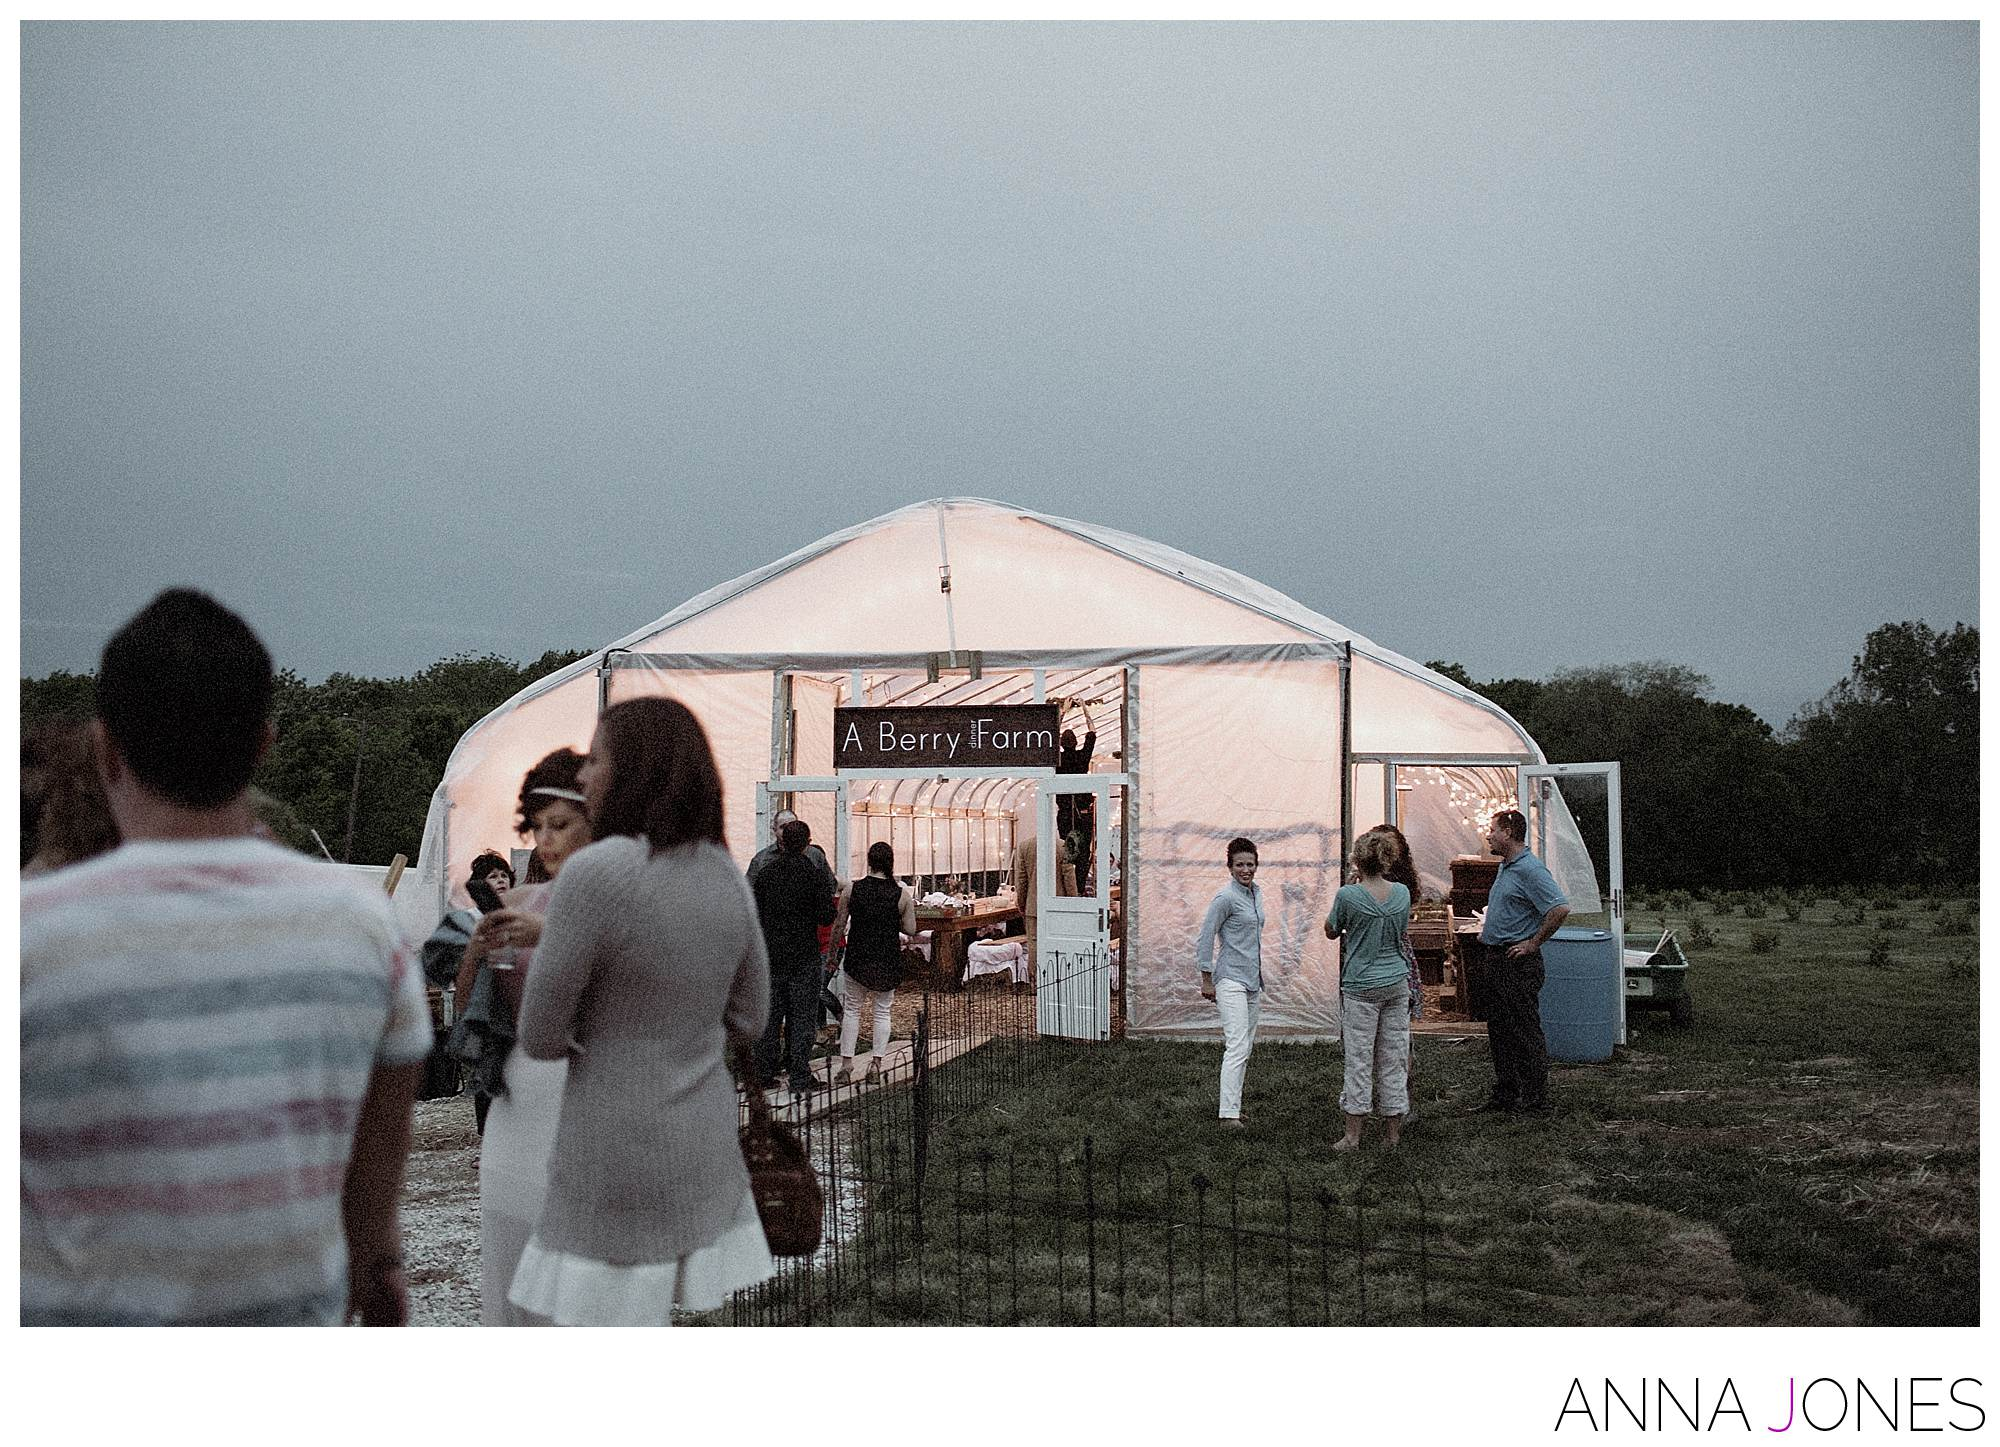 ashlee + danny vansyoc > anna jones wedding + lifestyle photography > (C) www.annajon.es